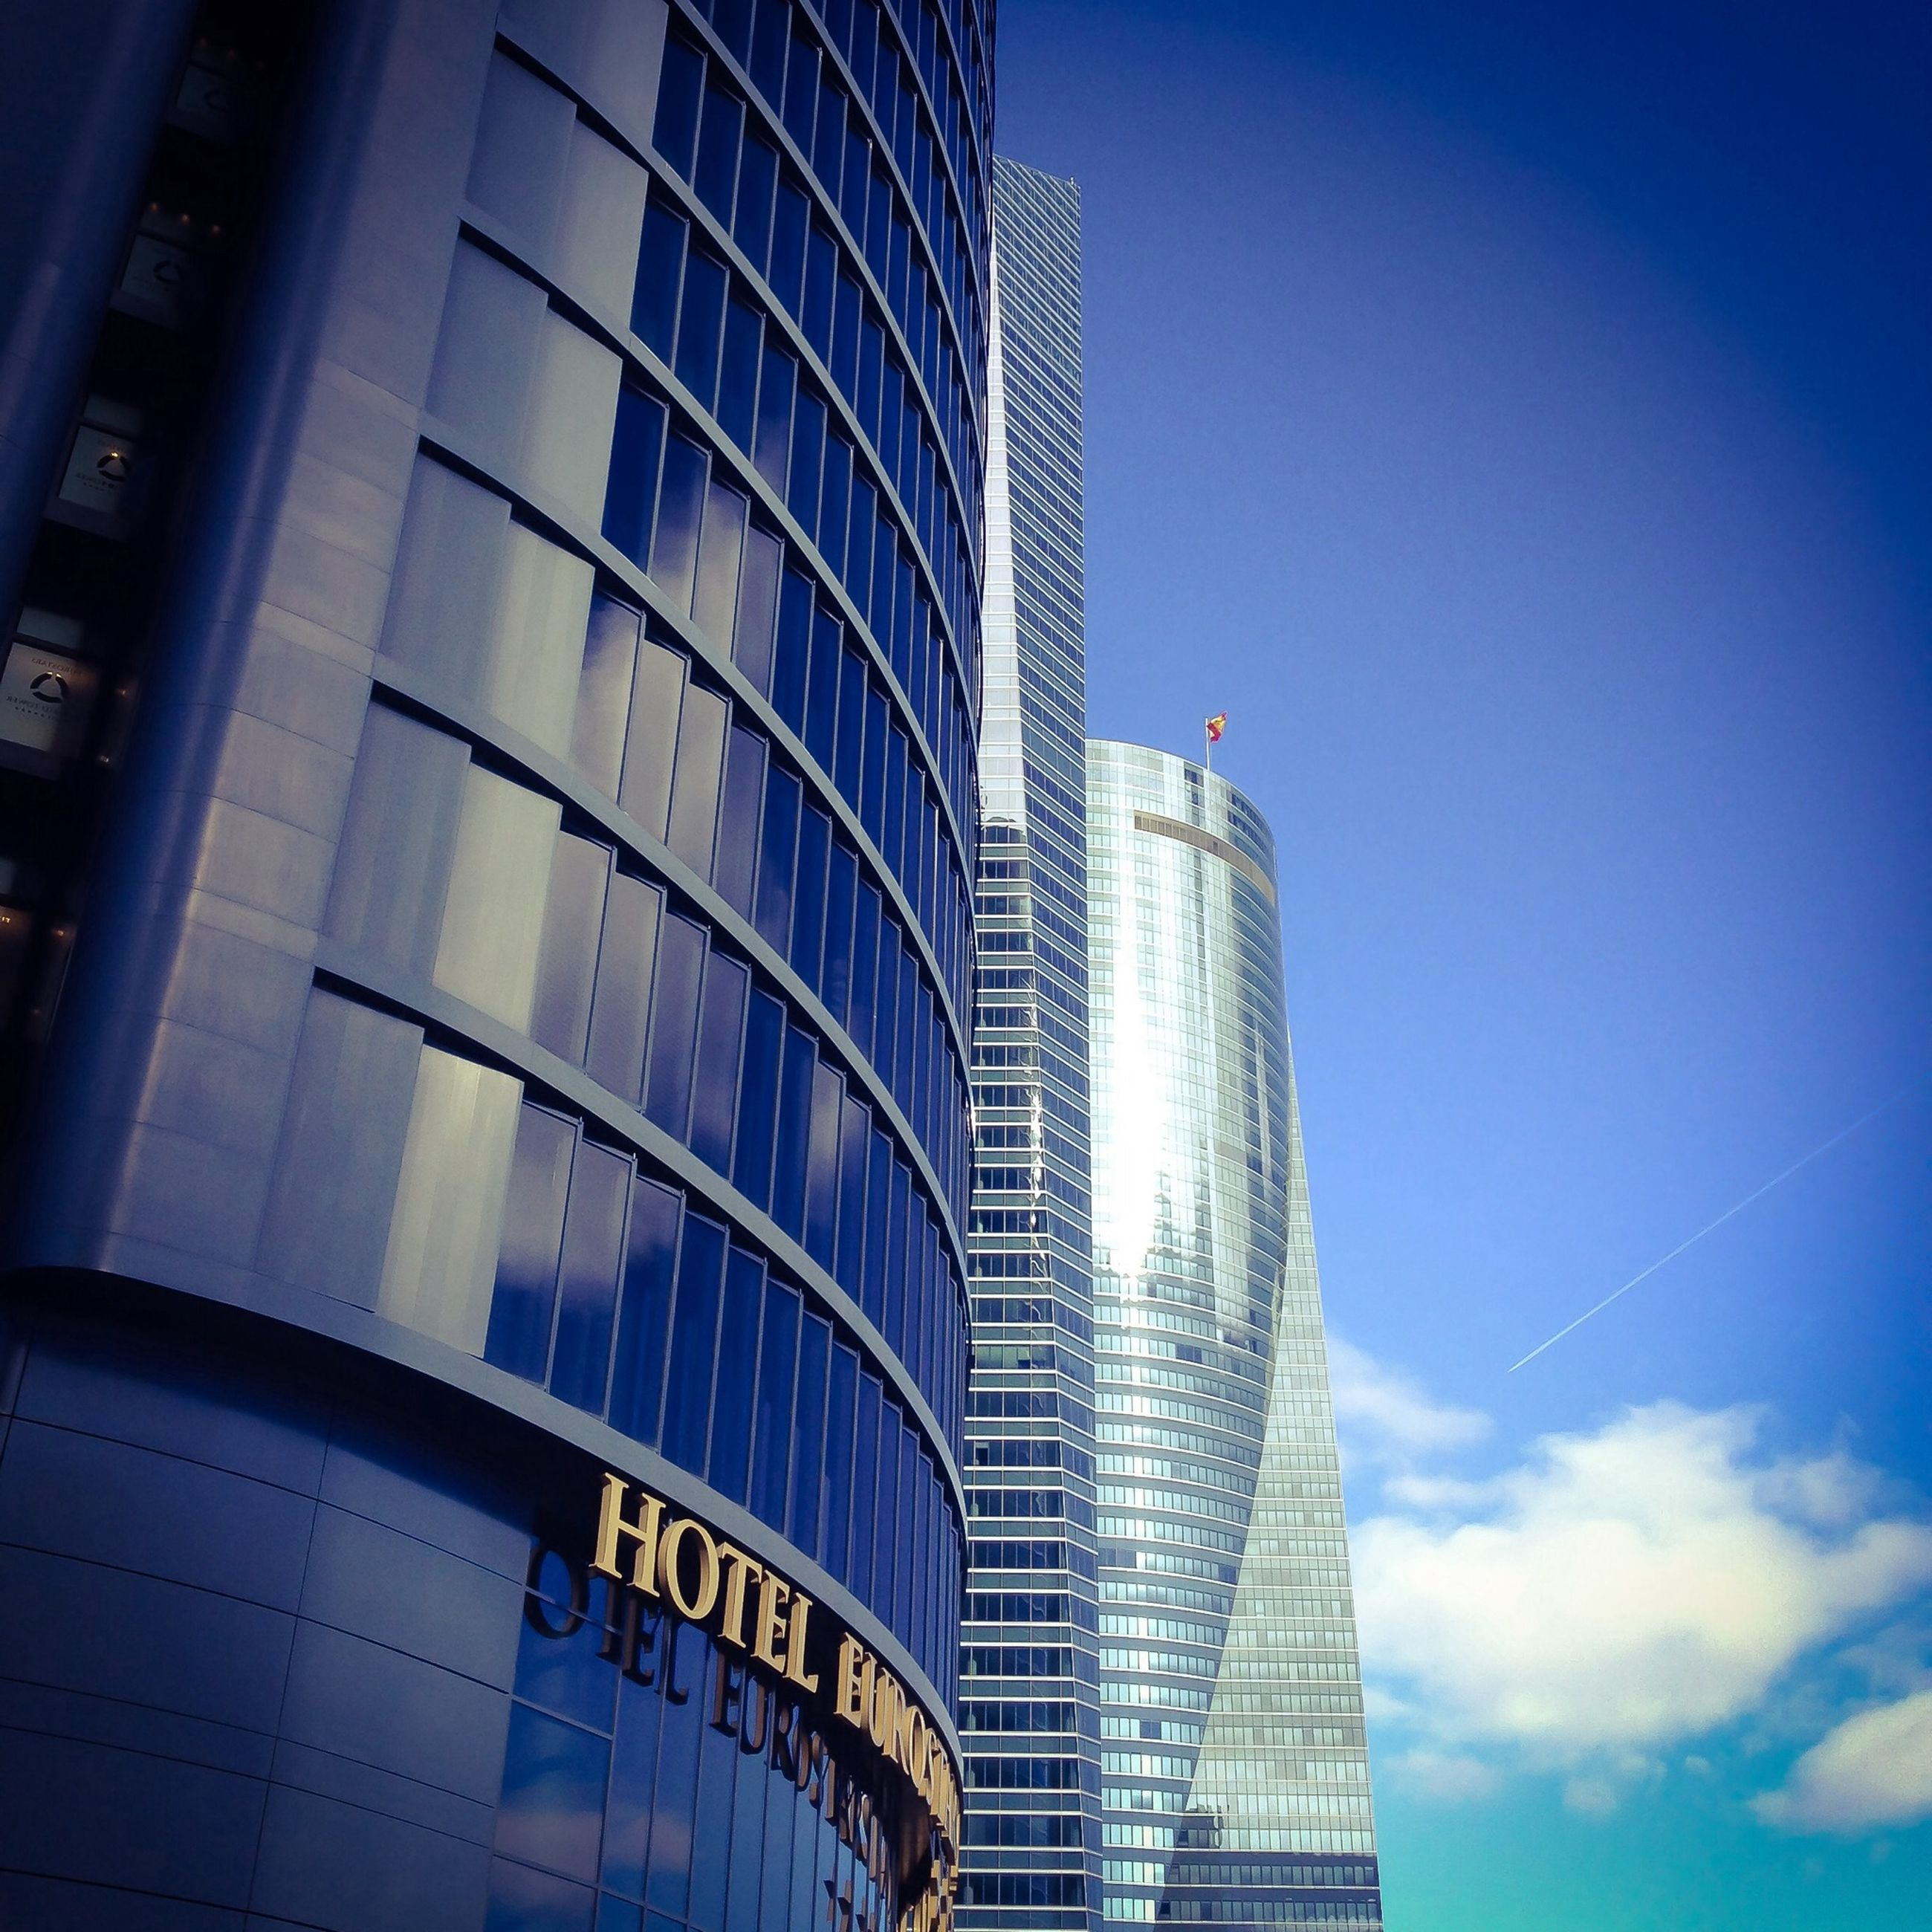 architecture, building exterior, built structure, low angle view, modern, office building, city, skyscraper, blue, tall - high, building, tower, sky, reflection, glass - material, tall, clear sky, day, outdoors, no people